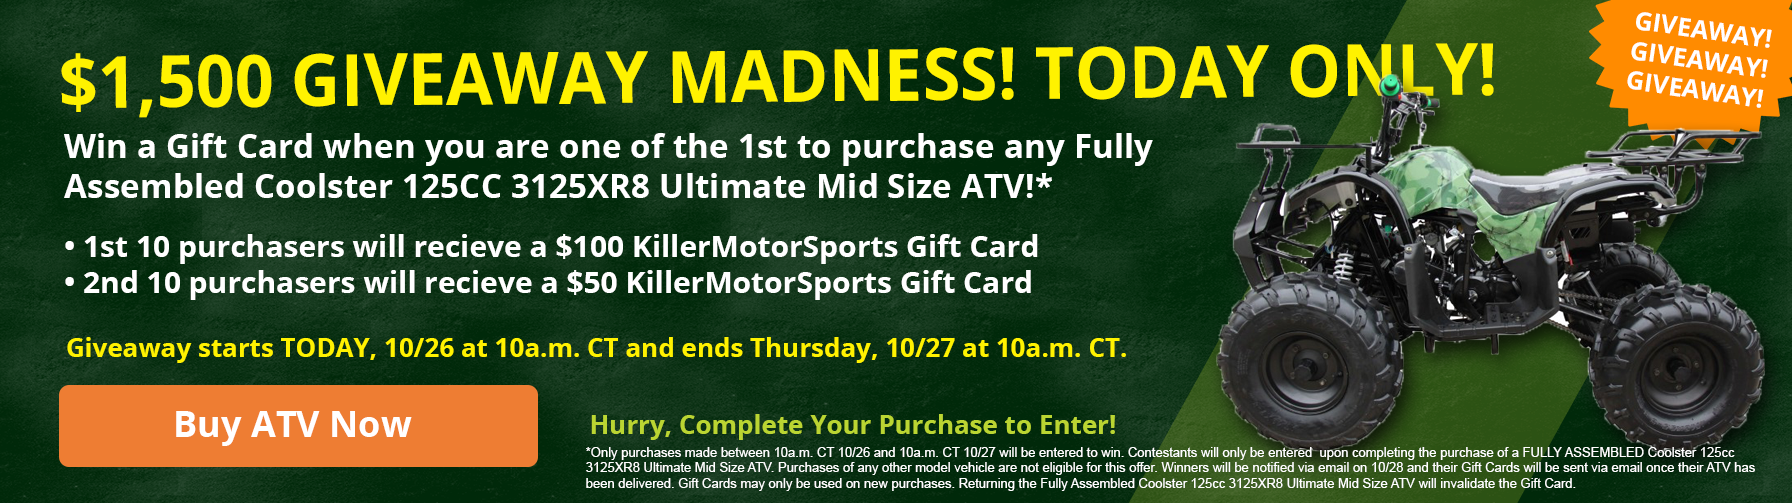 ATV Gift Card Giveaway